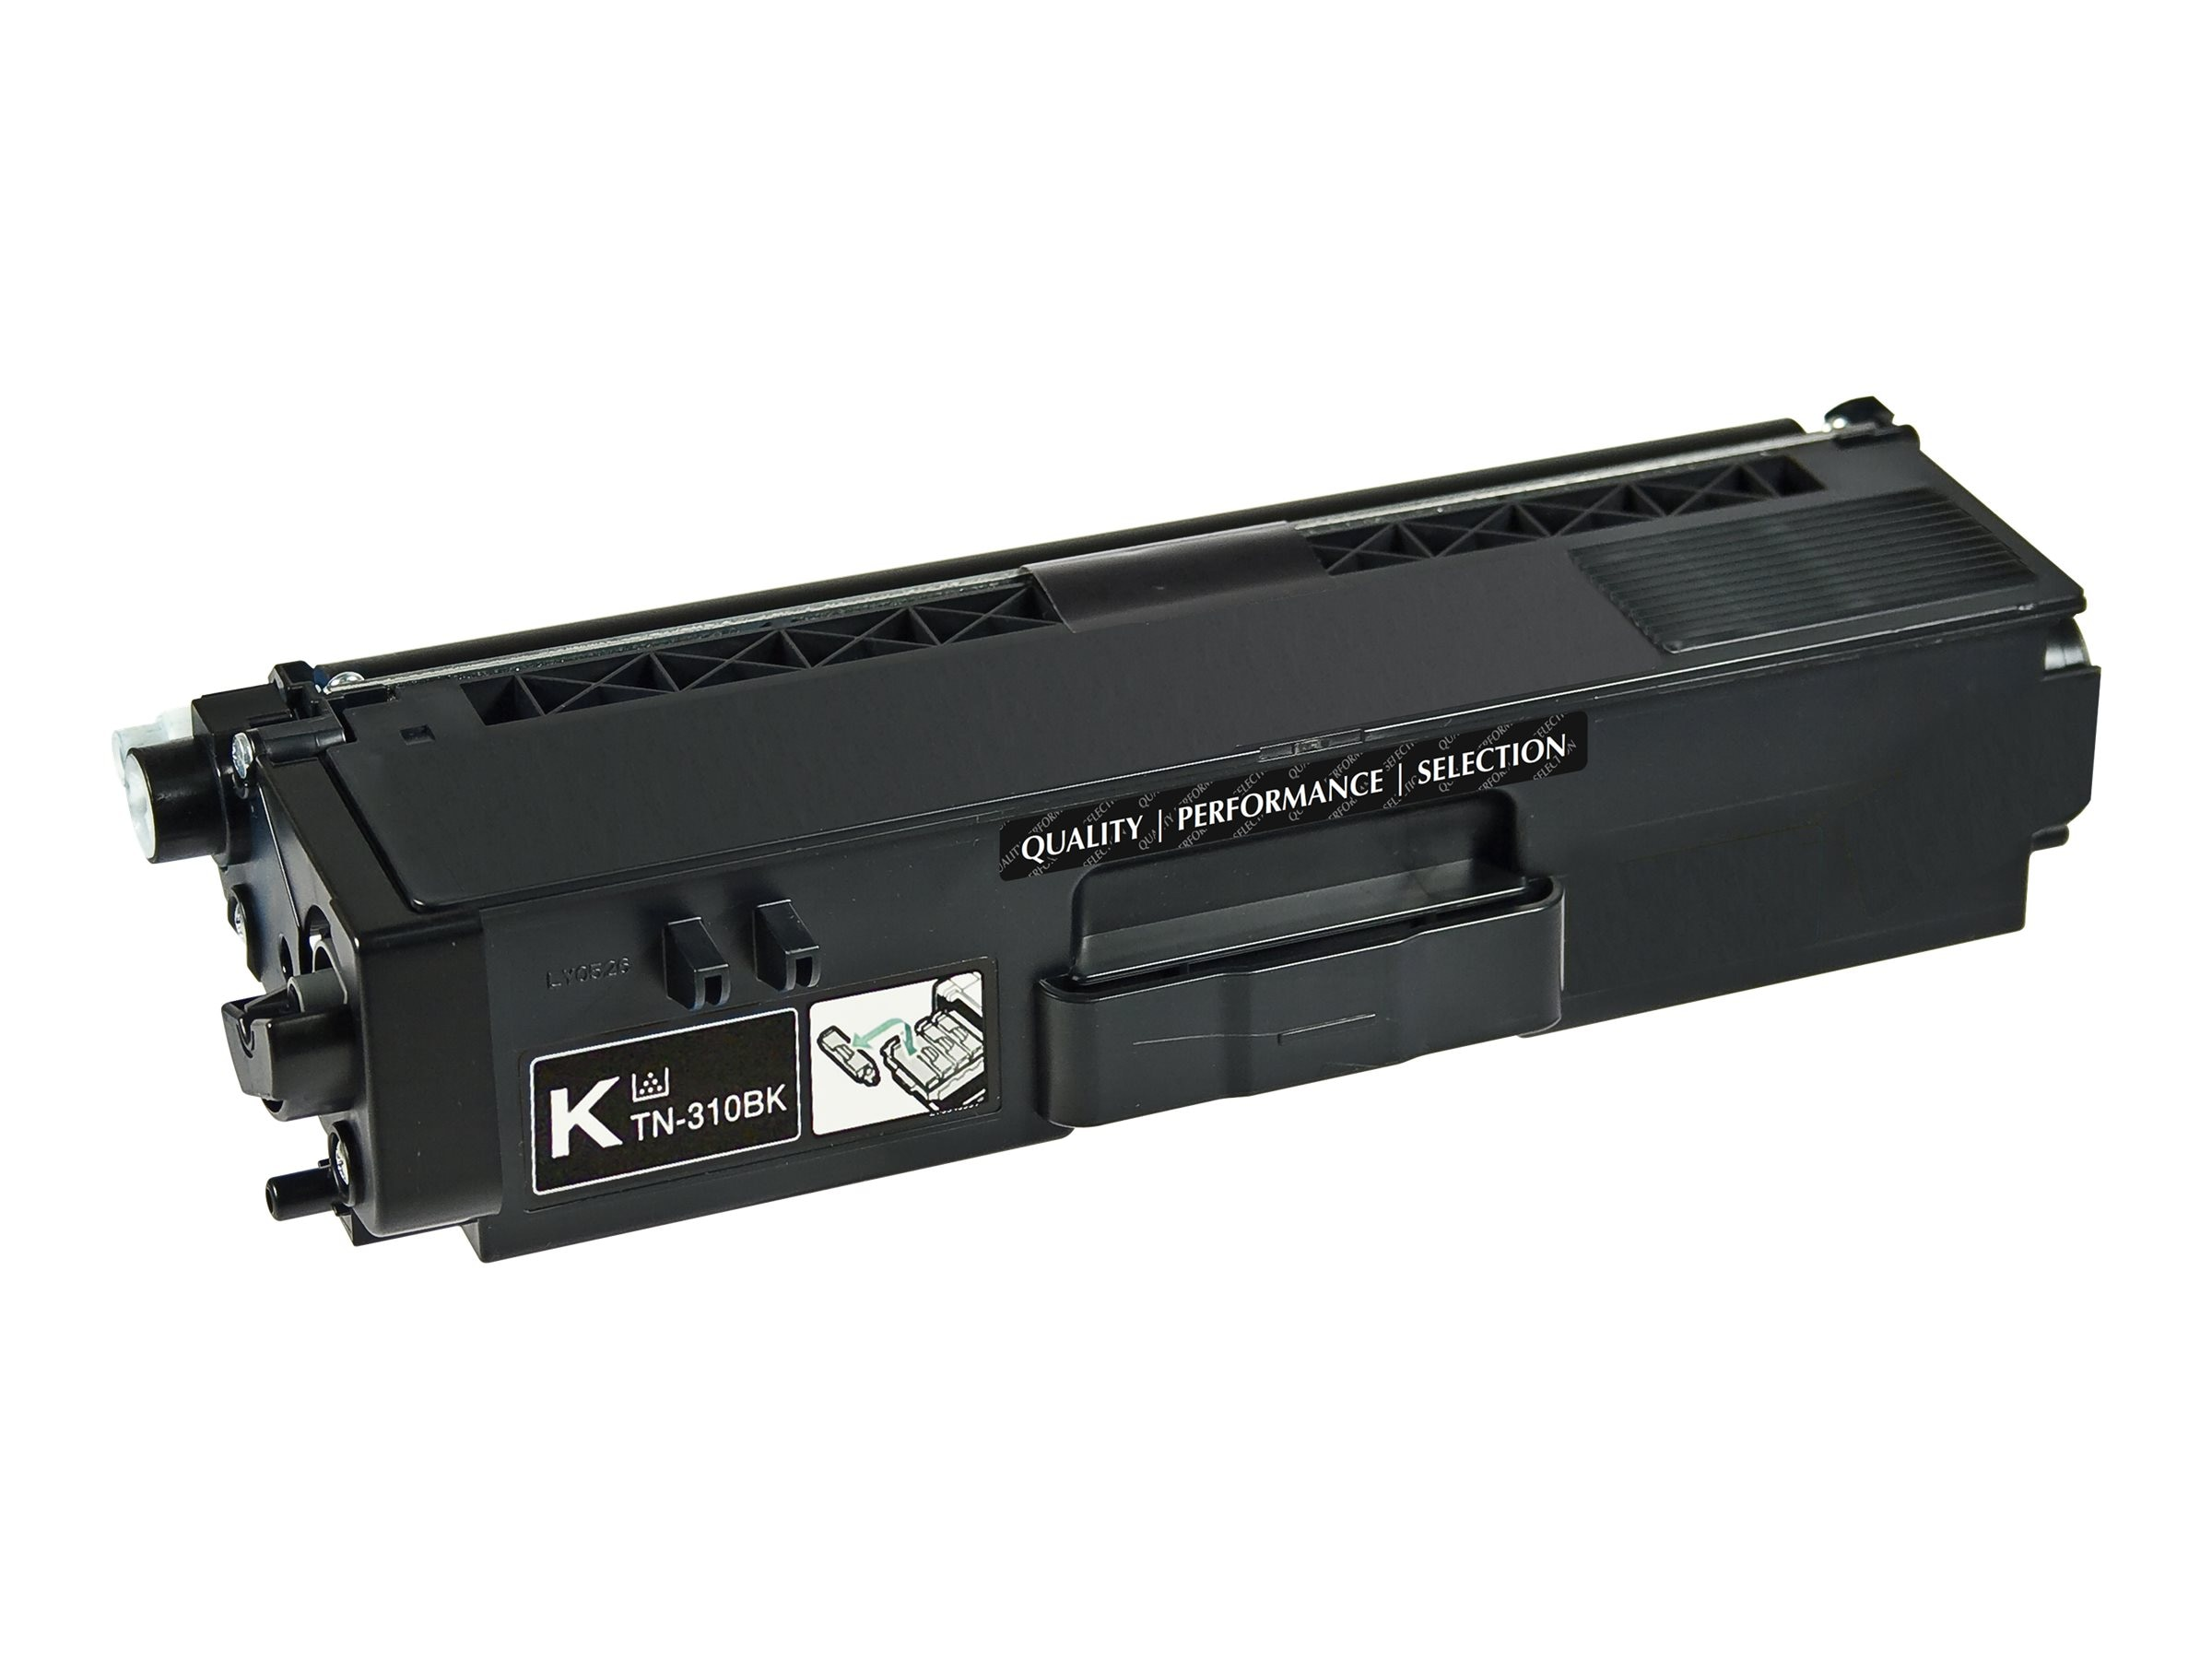 V7 TN315BK Black High Yield Toner Cartridge for Brother